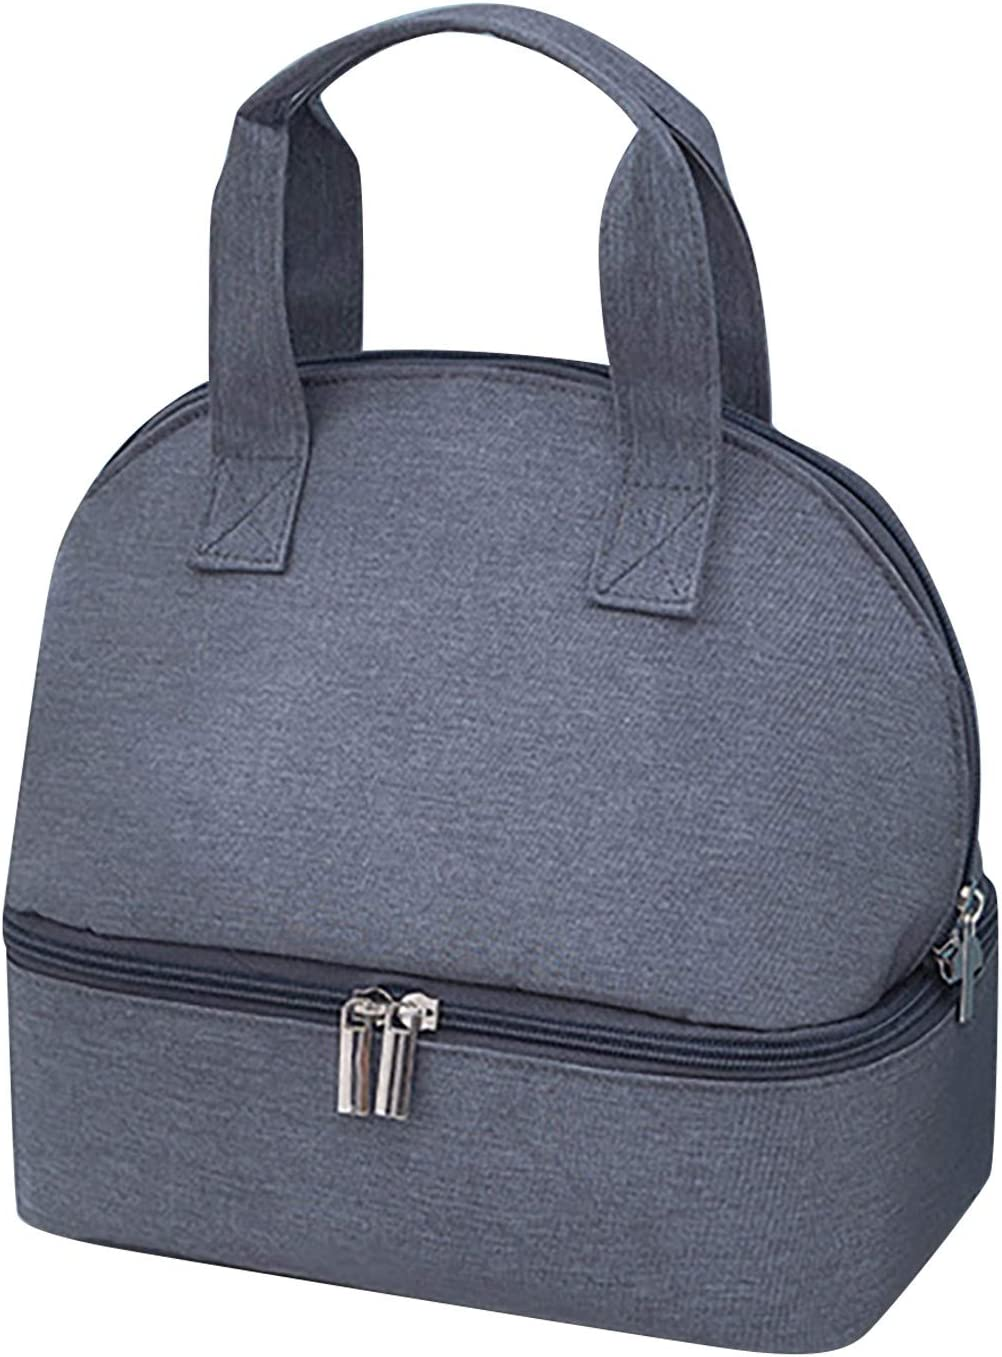 Double Compartment Lunch Bag for Women & Kids Insulated Tote Lunch Bag Waterproof Leakproof Lunch Bag with Zipper (Gray)